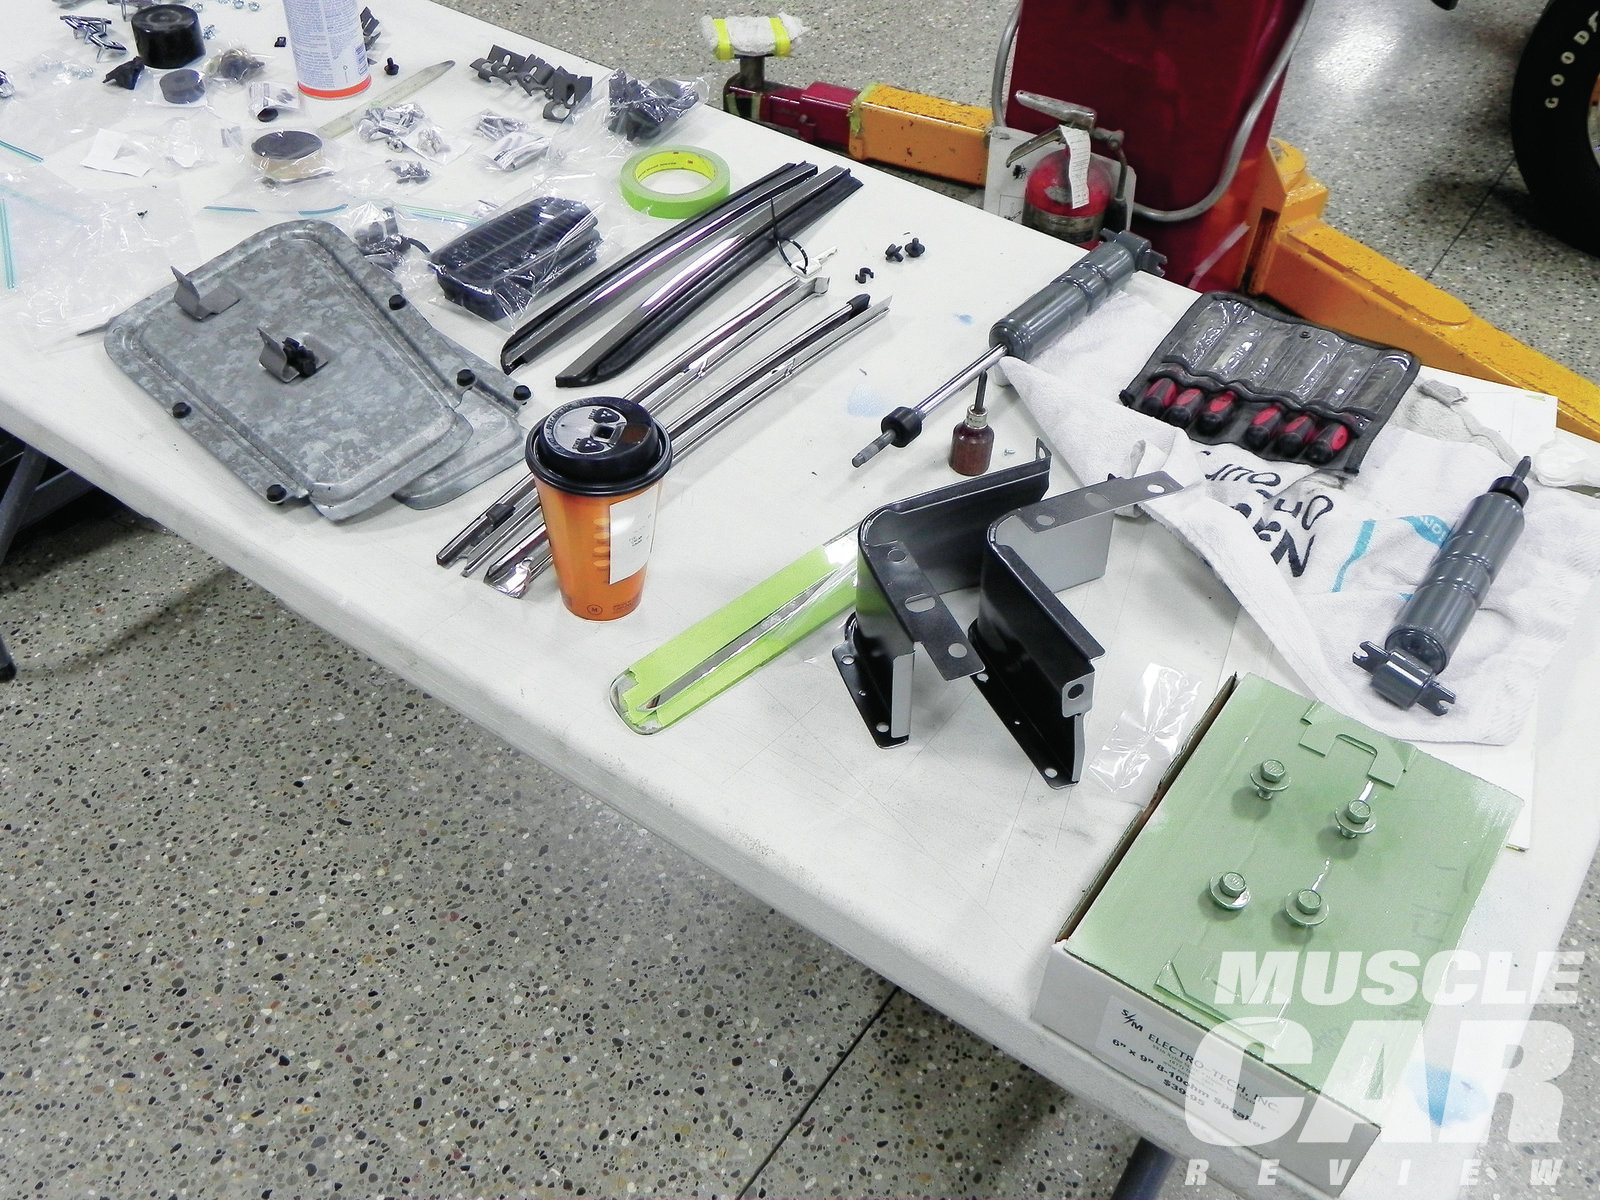 Small pieces, like trunk shims and bolts, can be painted and put in later, although the parts would have been together when the car was painted at the factory.